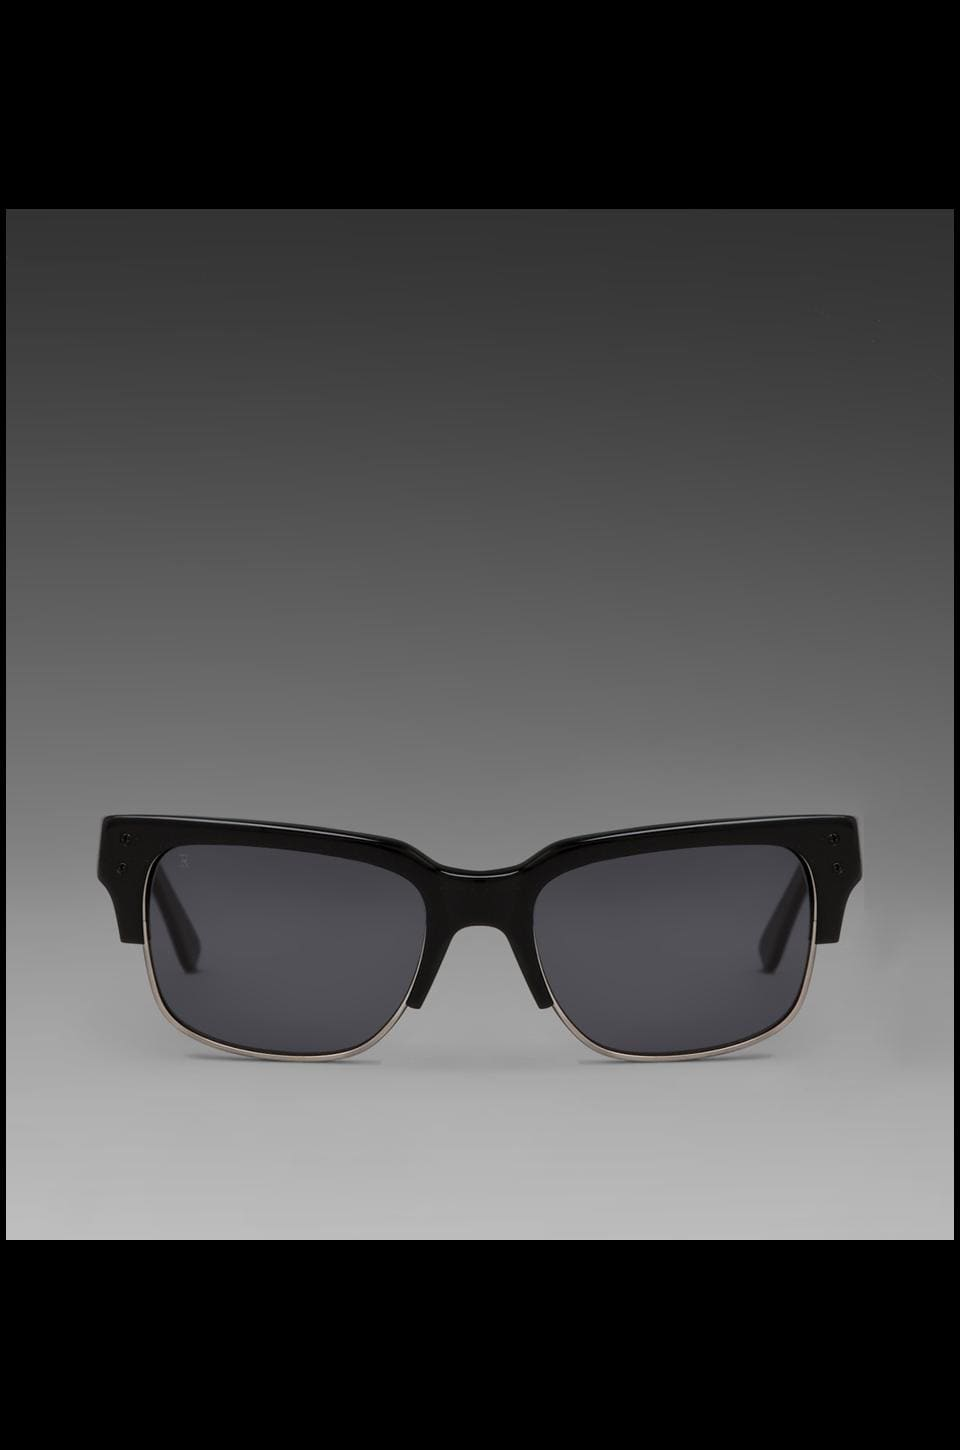 RAEN optics Polarized Underwood Sunglass in All Black